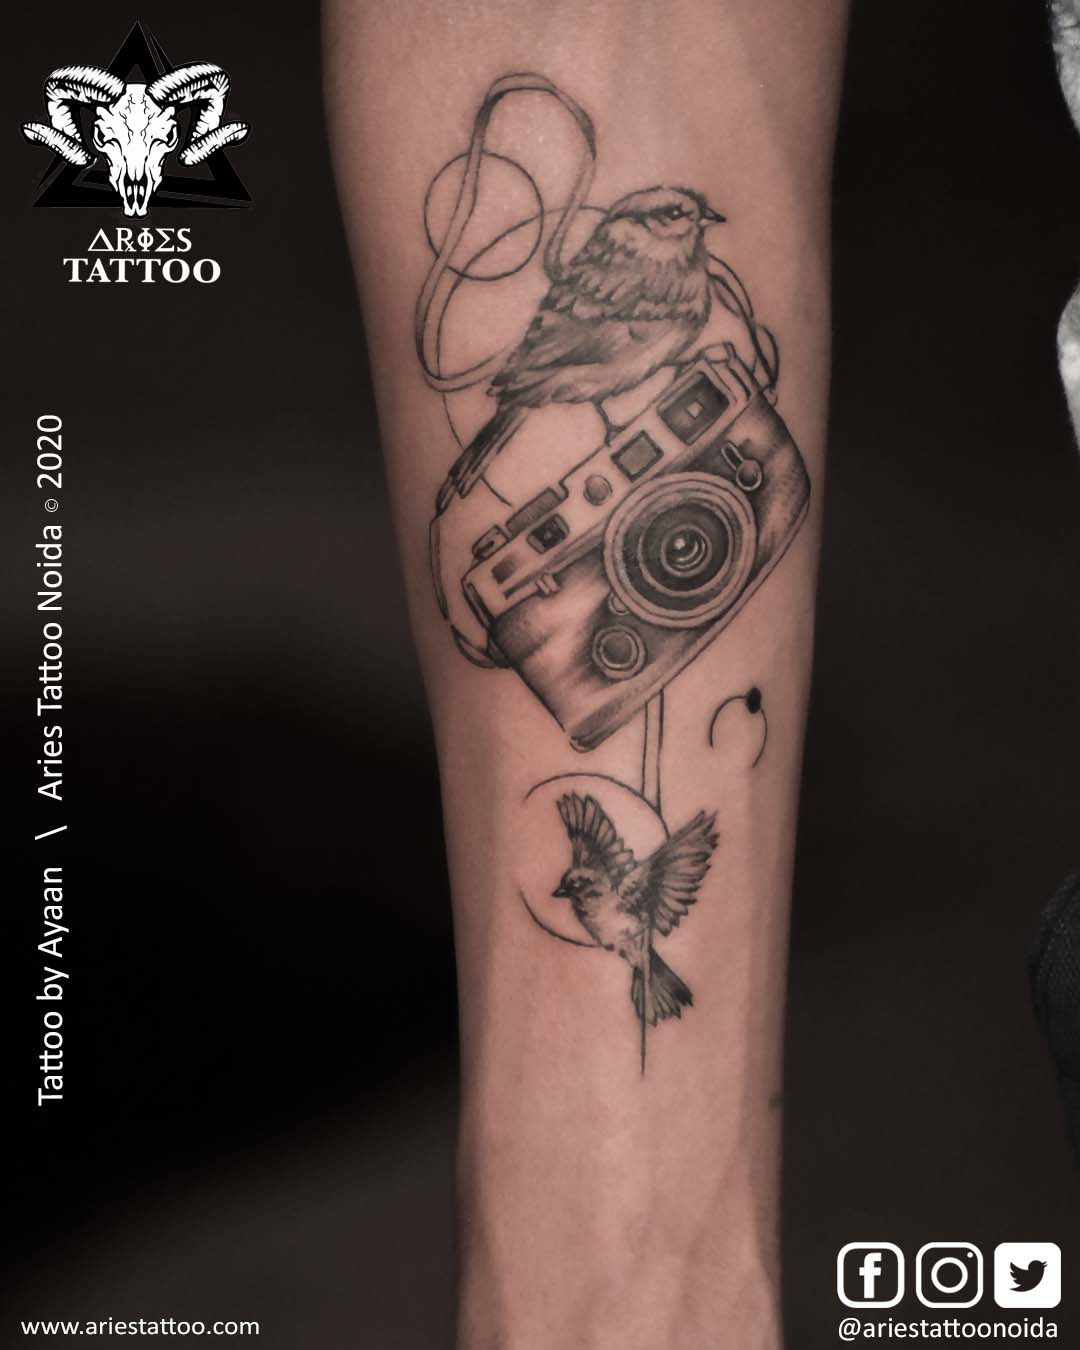 Photography Tattoo_Ayaan_AriesTattooNoida | |Aries Tattoo Noida | Tattoo Shop and Studio In Noida